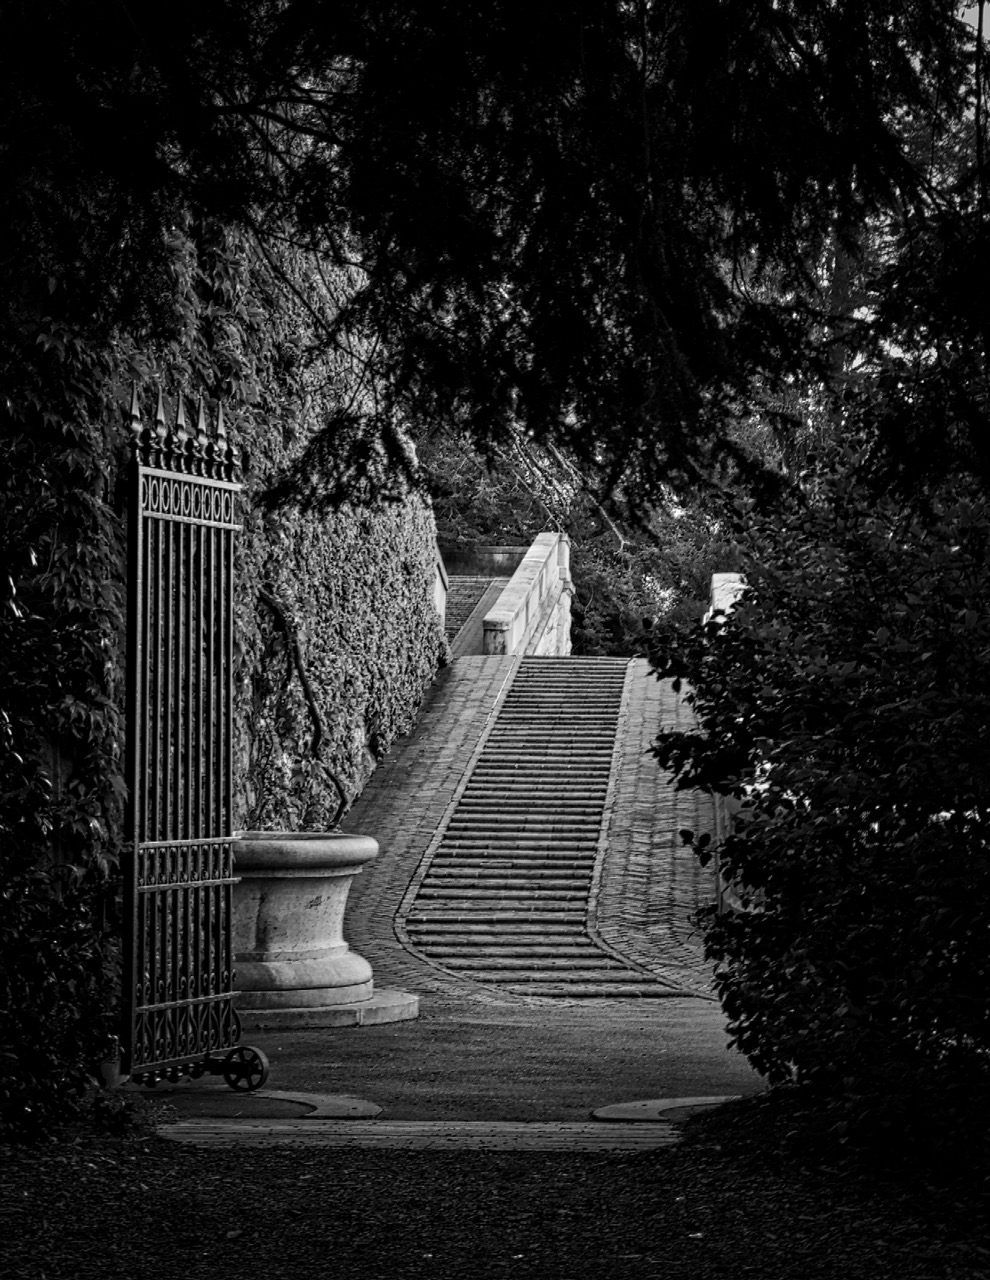 Black & White of the entranceway